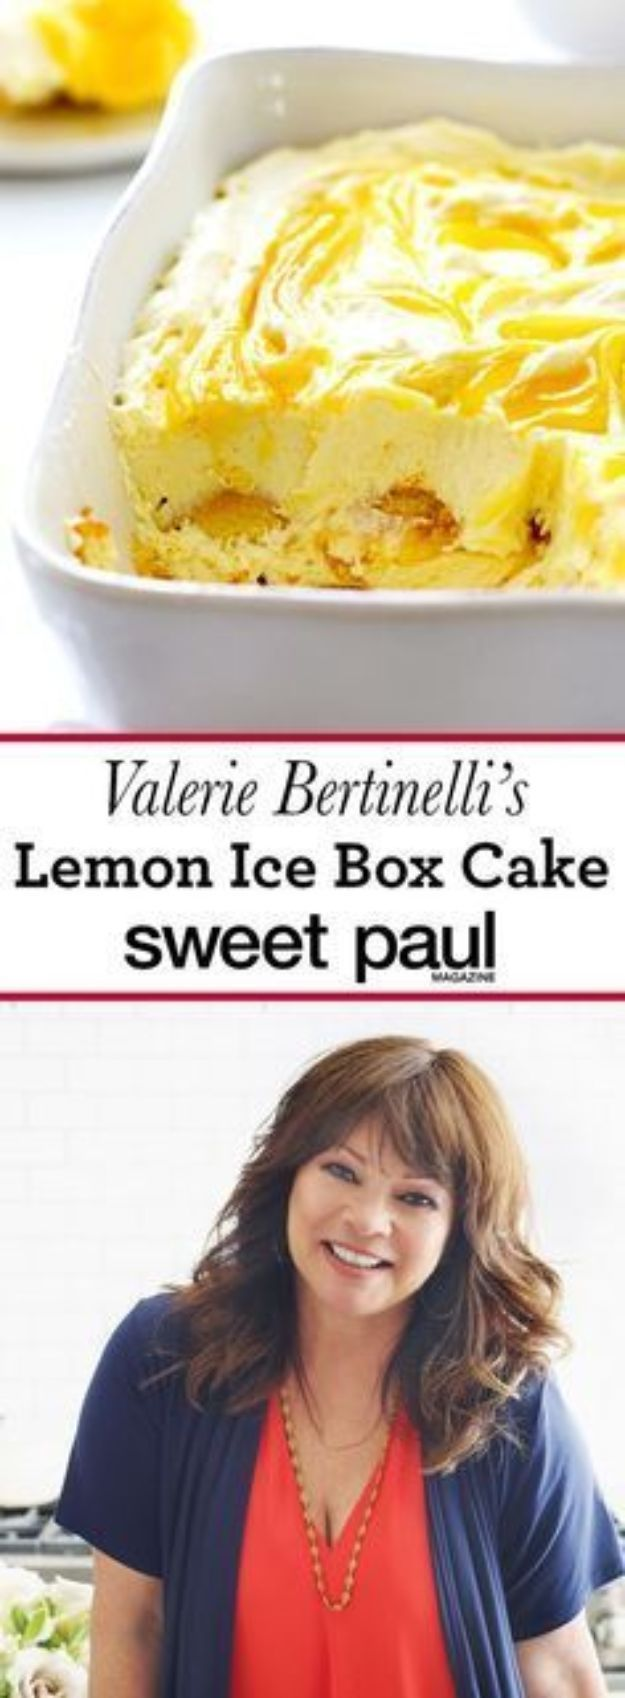 34 Favorite Celebrity Inspired Recipes In 2020 Icebox Cake Recipes Sweet Paul